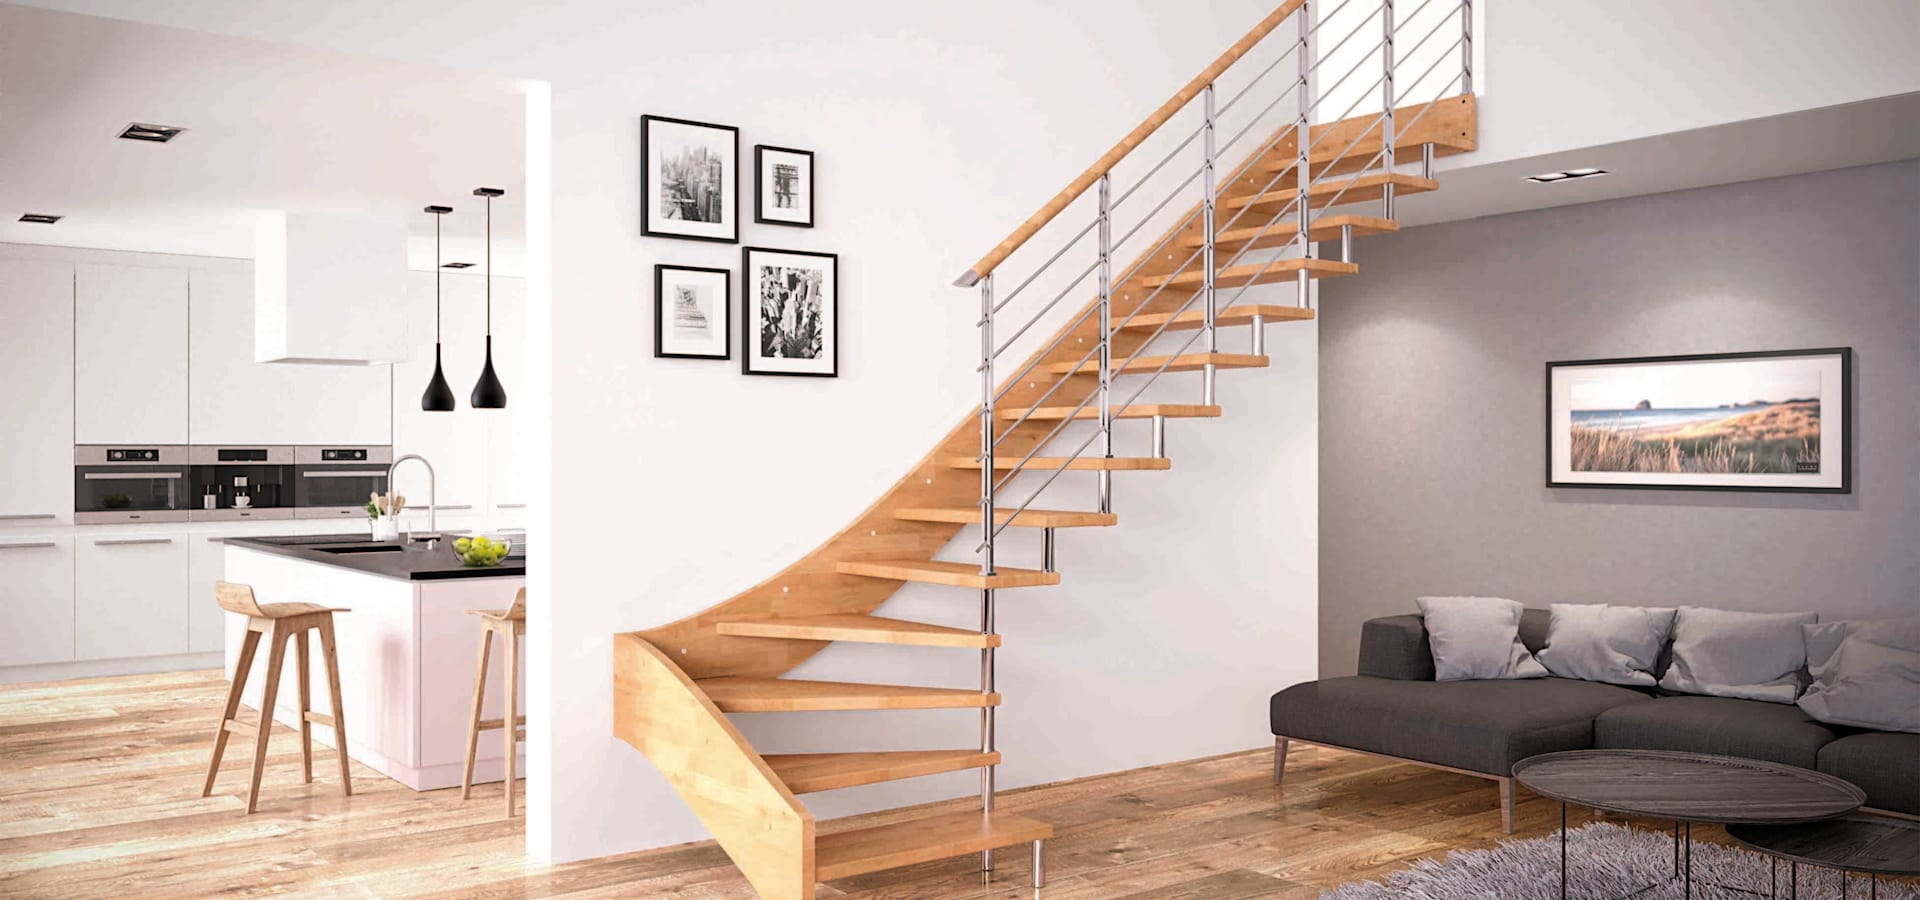 Rintal scale ringhiere a forli homify - Rintal scale forli ...